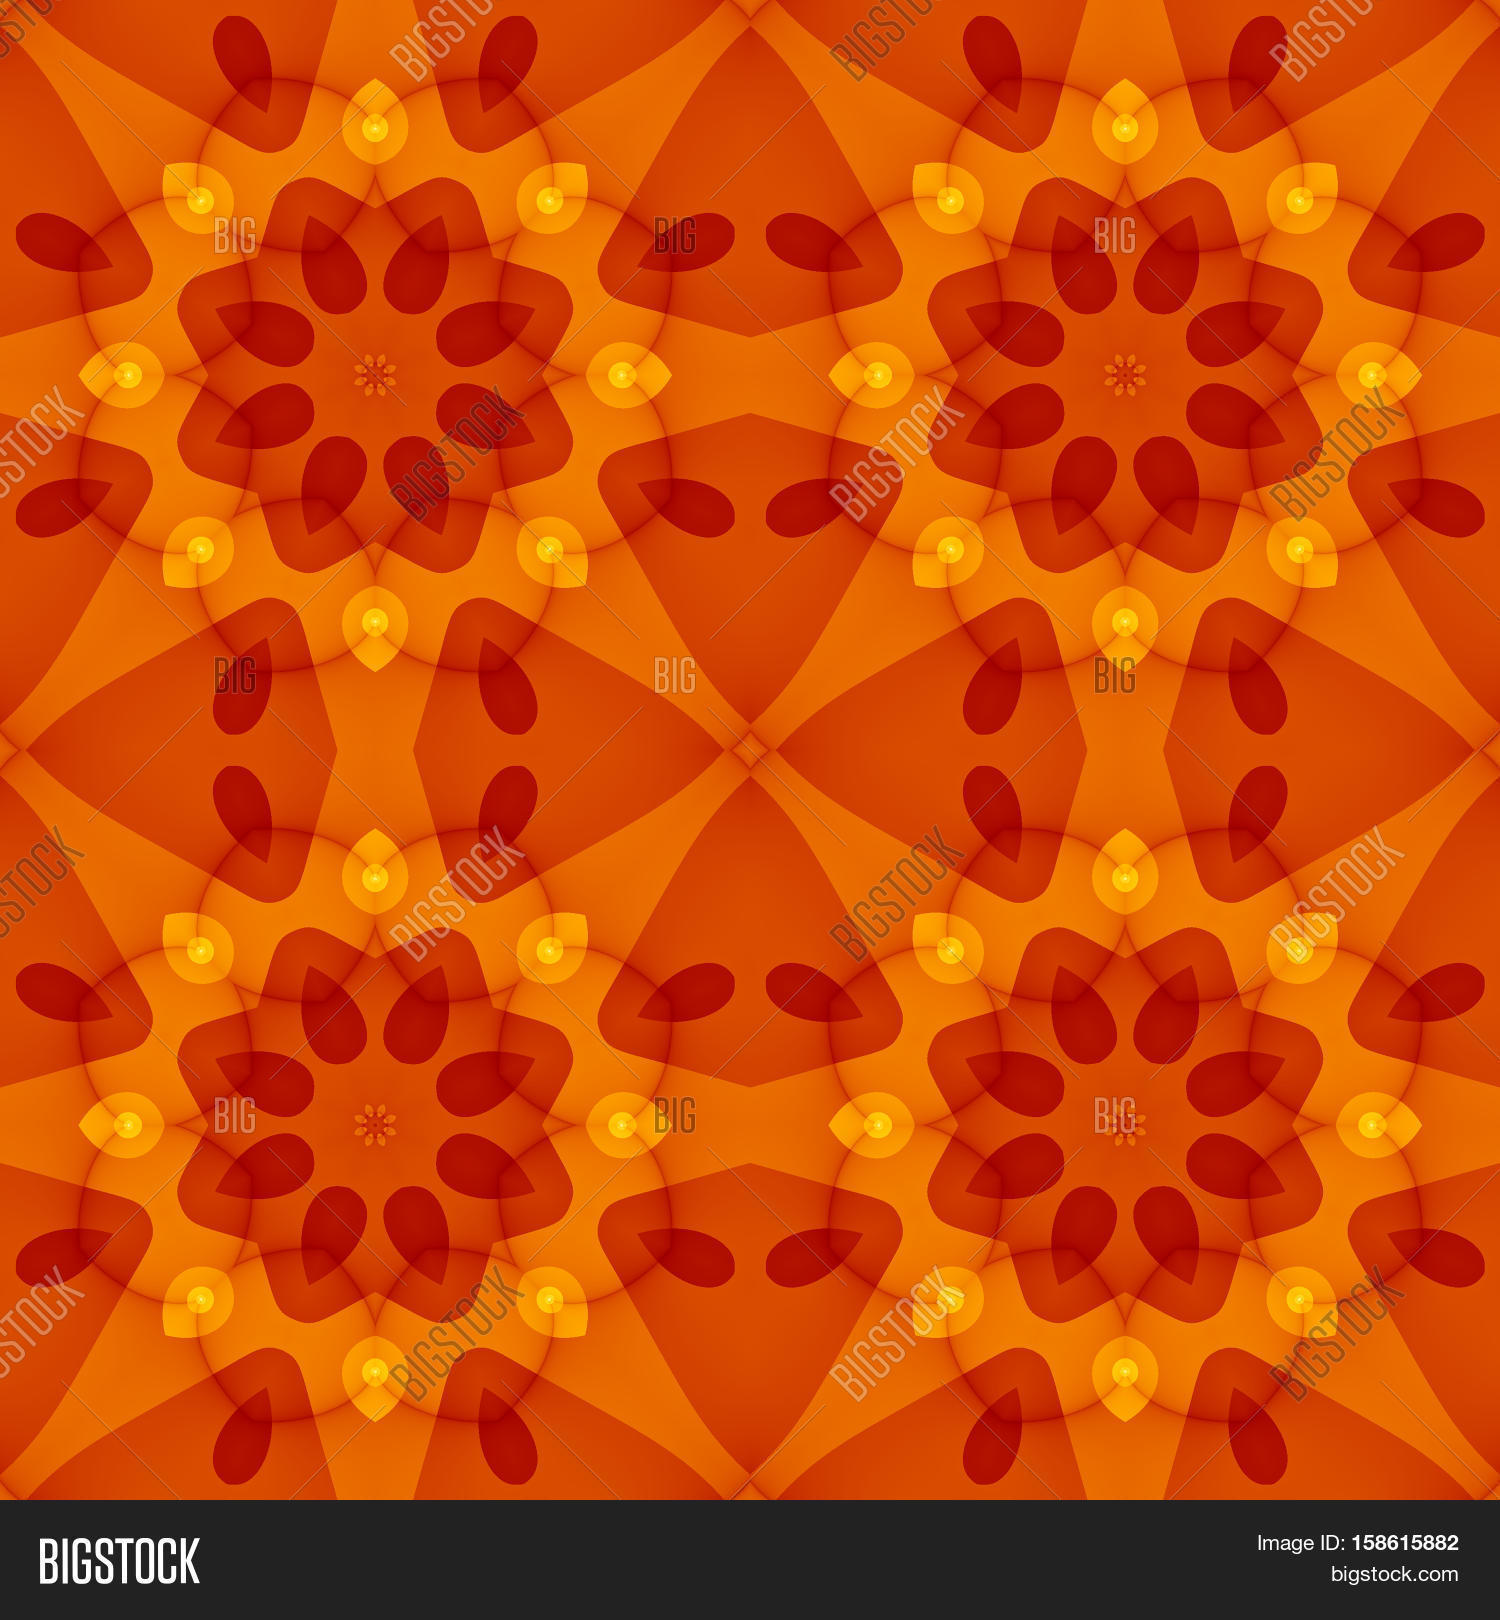 Bed sheet pattern texture - Seamless Texture With A Warm Orange Red Floral Pattern For Print On Textiles Bed Sheets